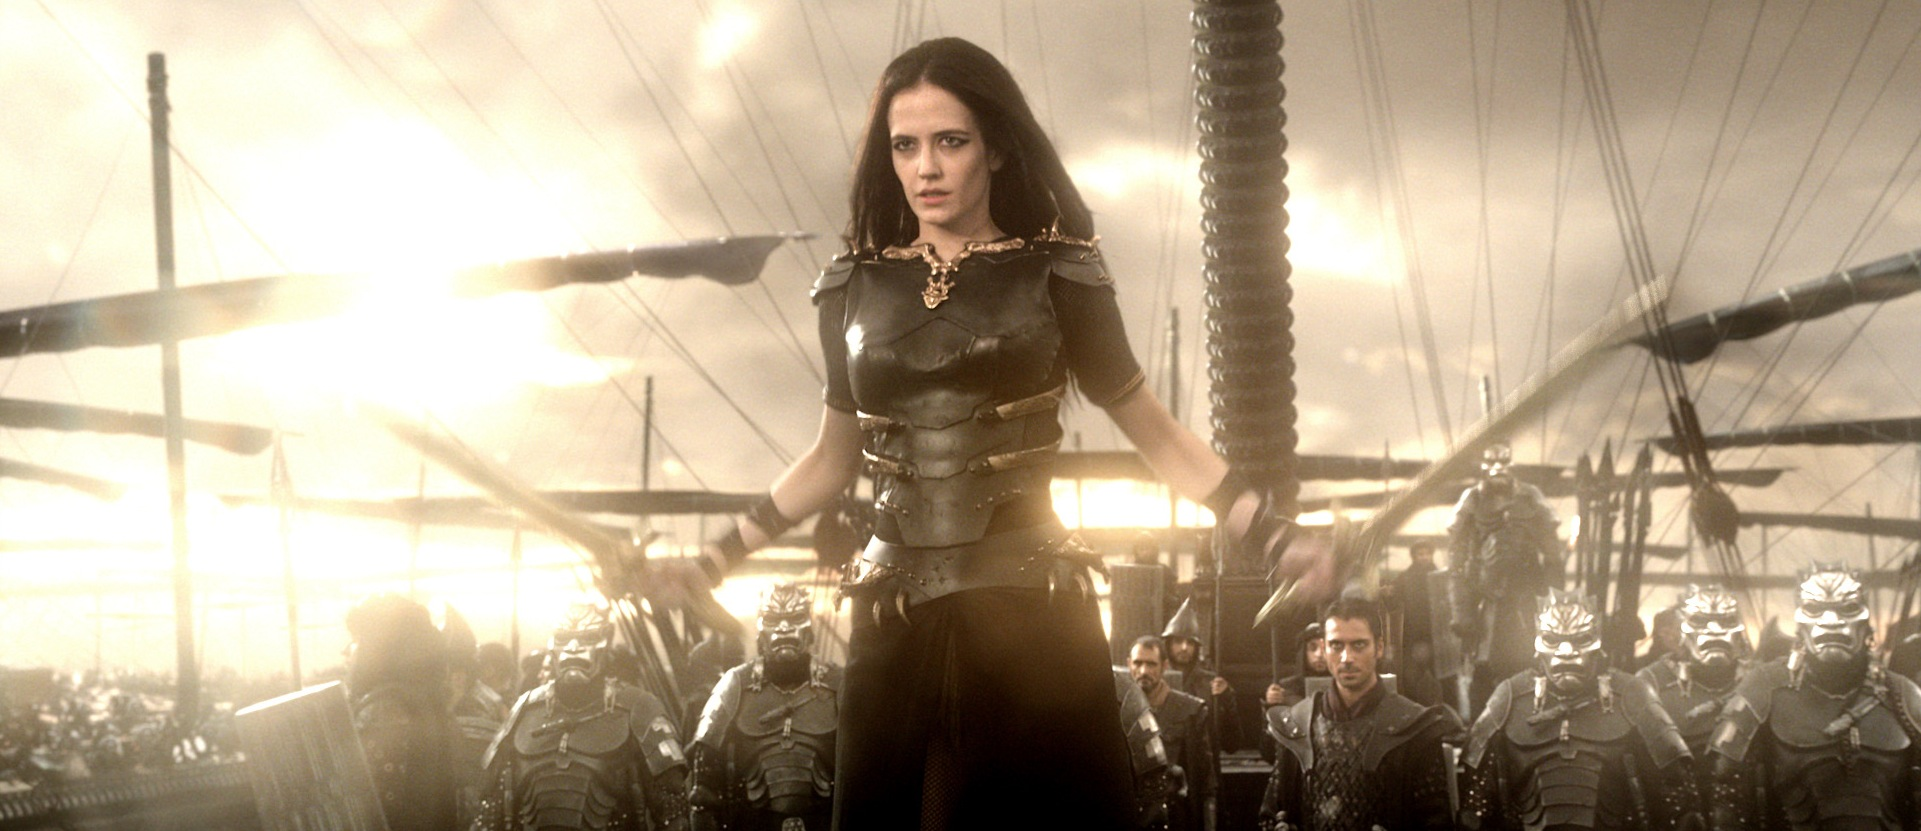 300 Rise Of An Empire Cast | hd picture 300 rise of an ...